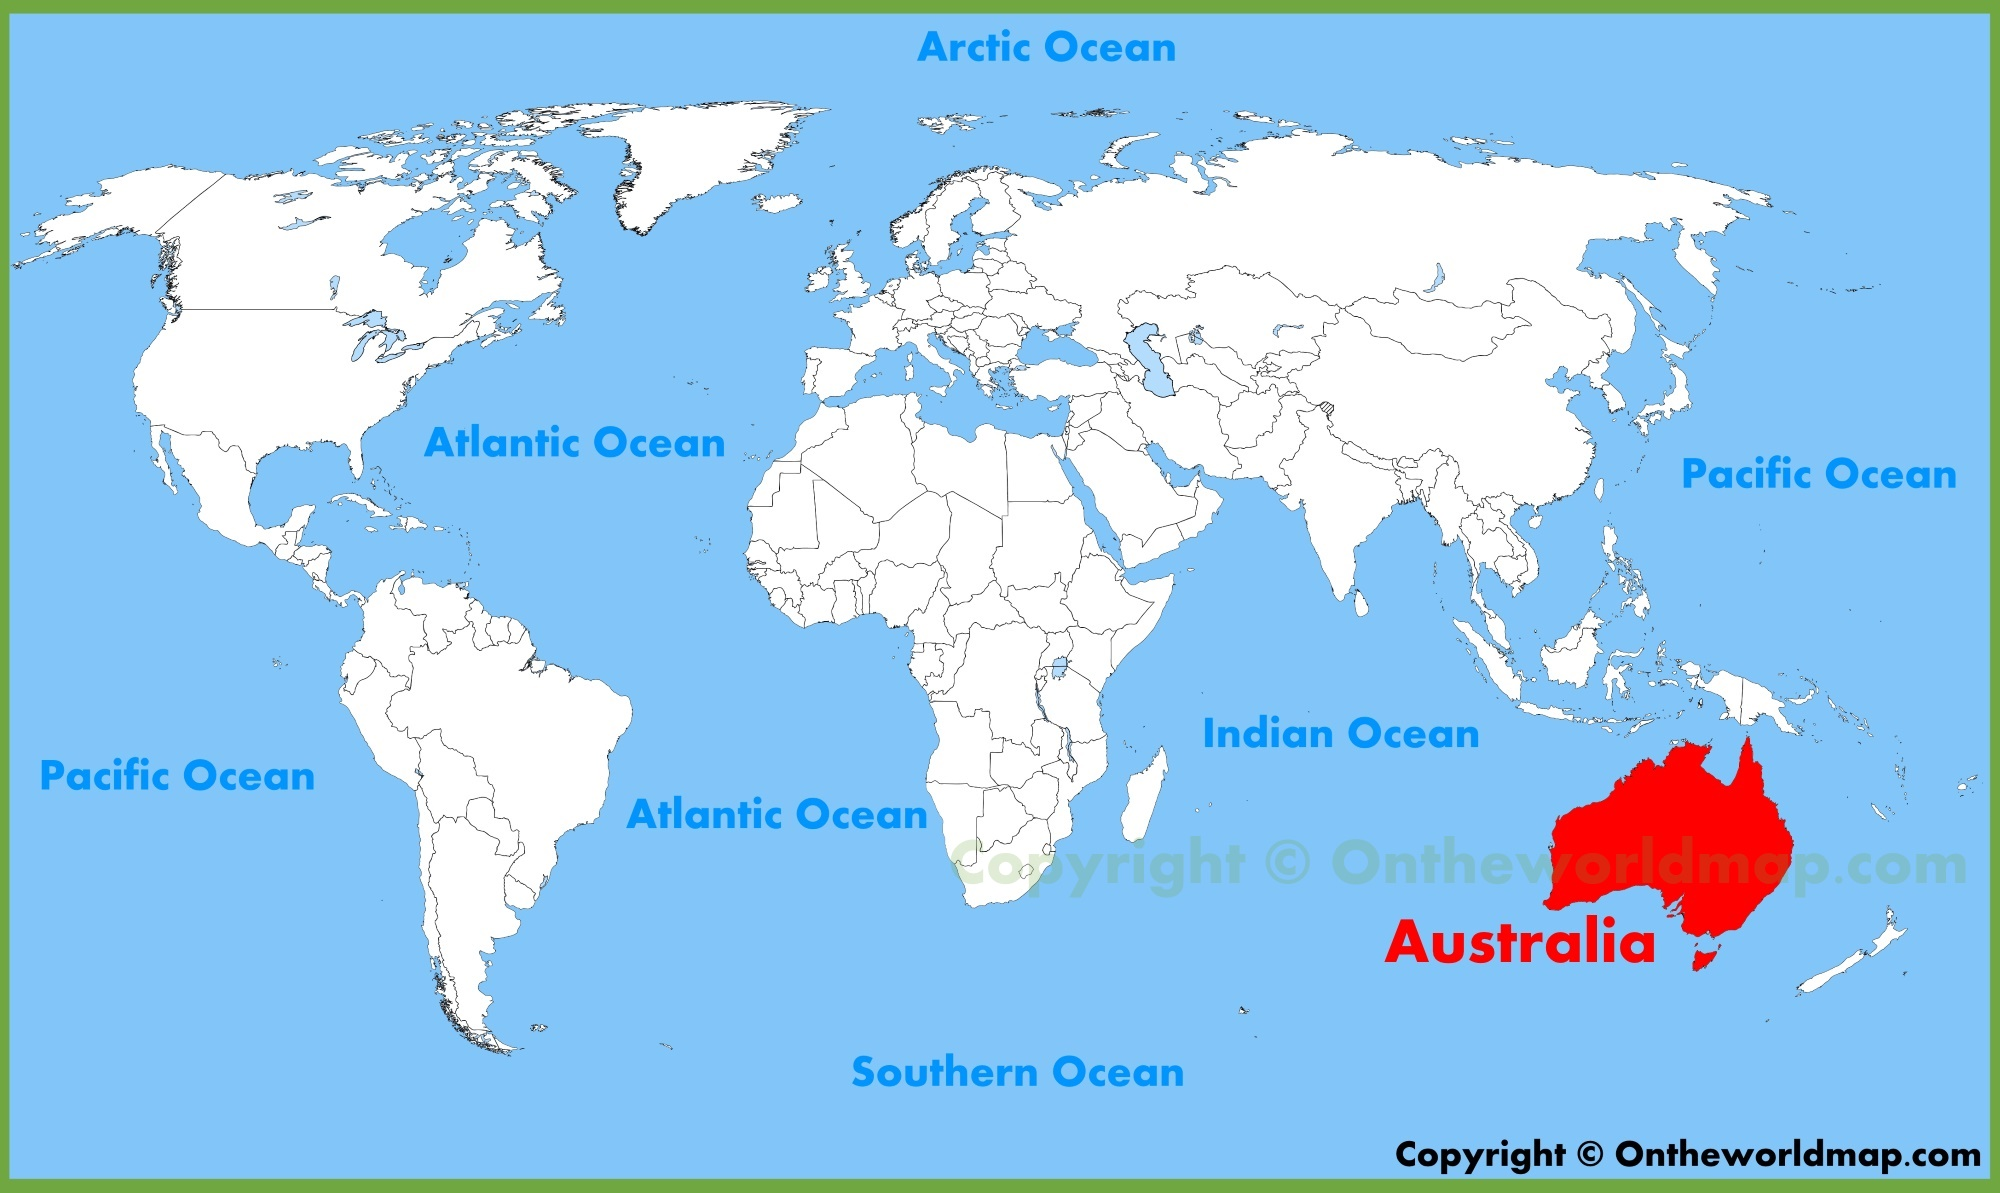 Australia Location On The World Map - Australia in world map